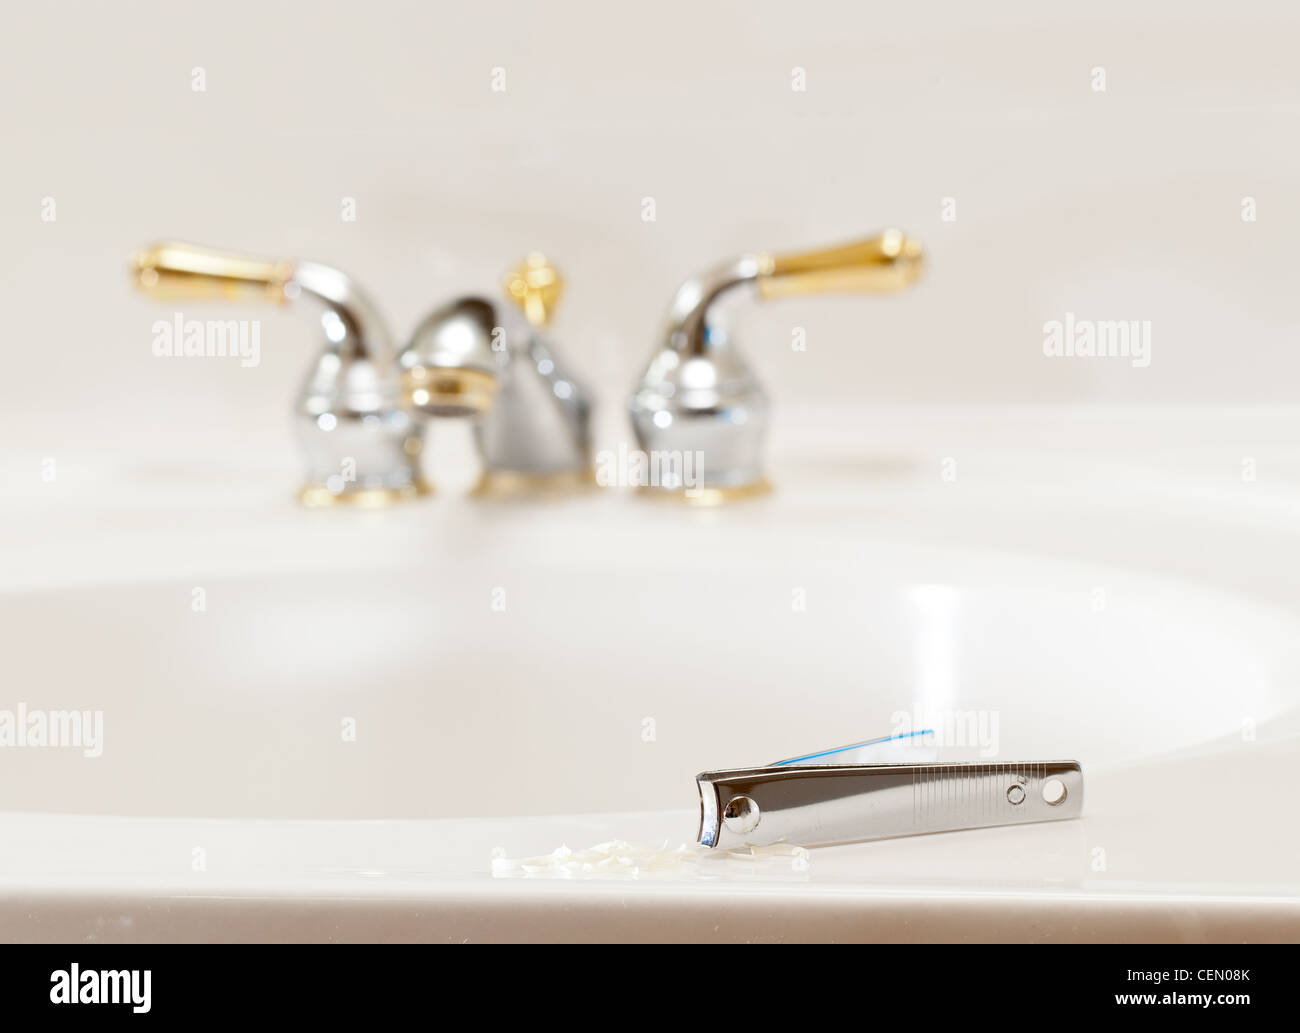 Finger nail clippings on bathroom sink with gold faucets or taps - Stock Image